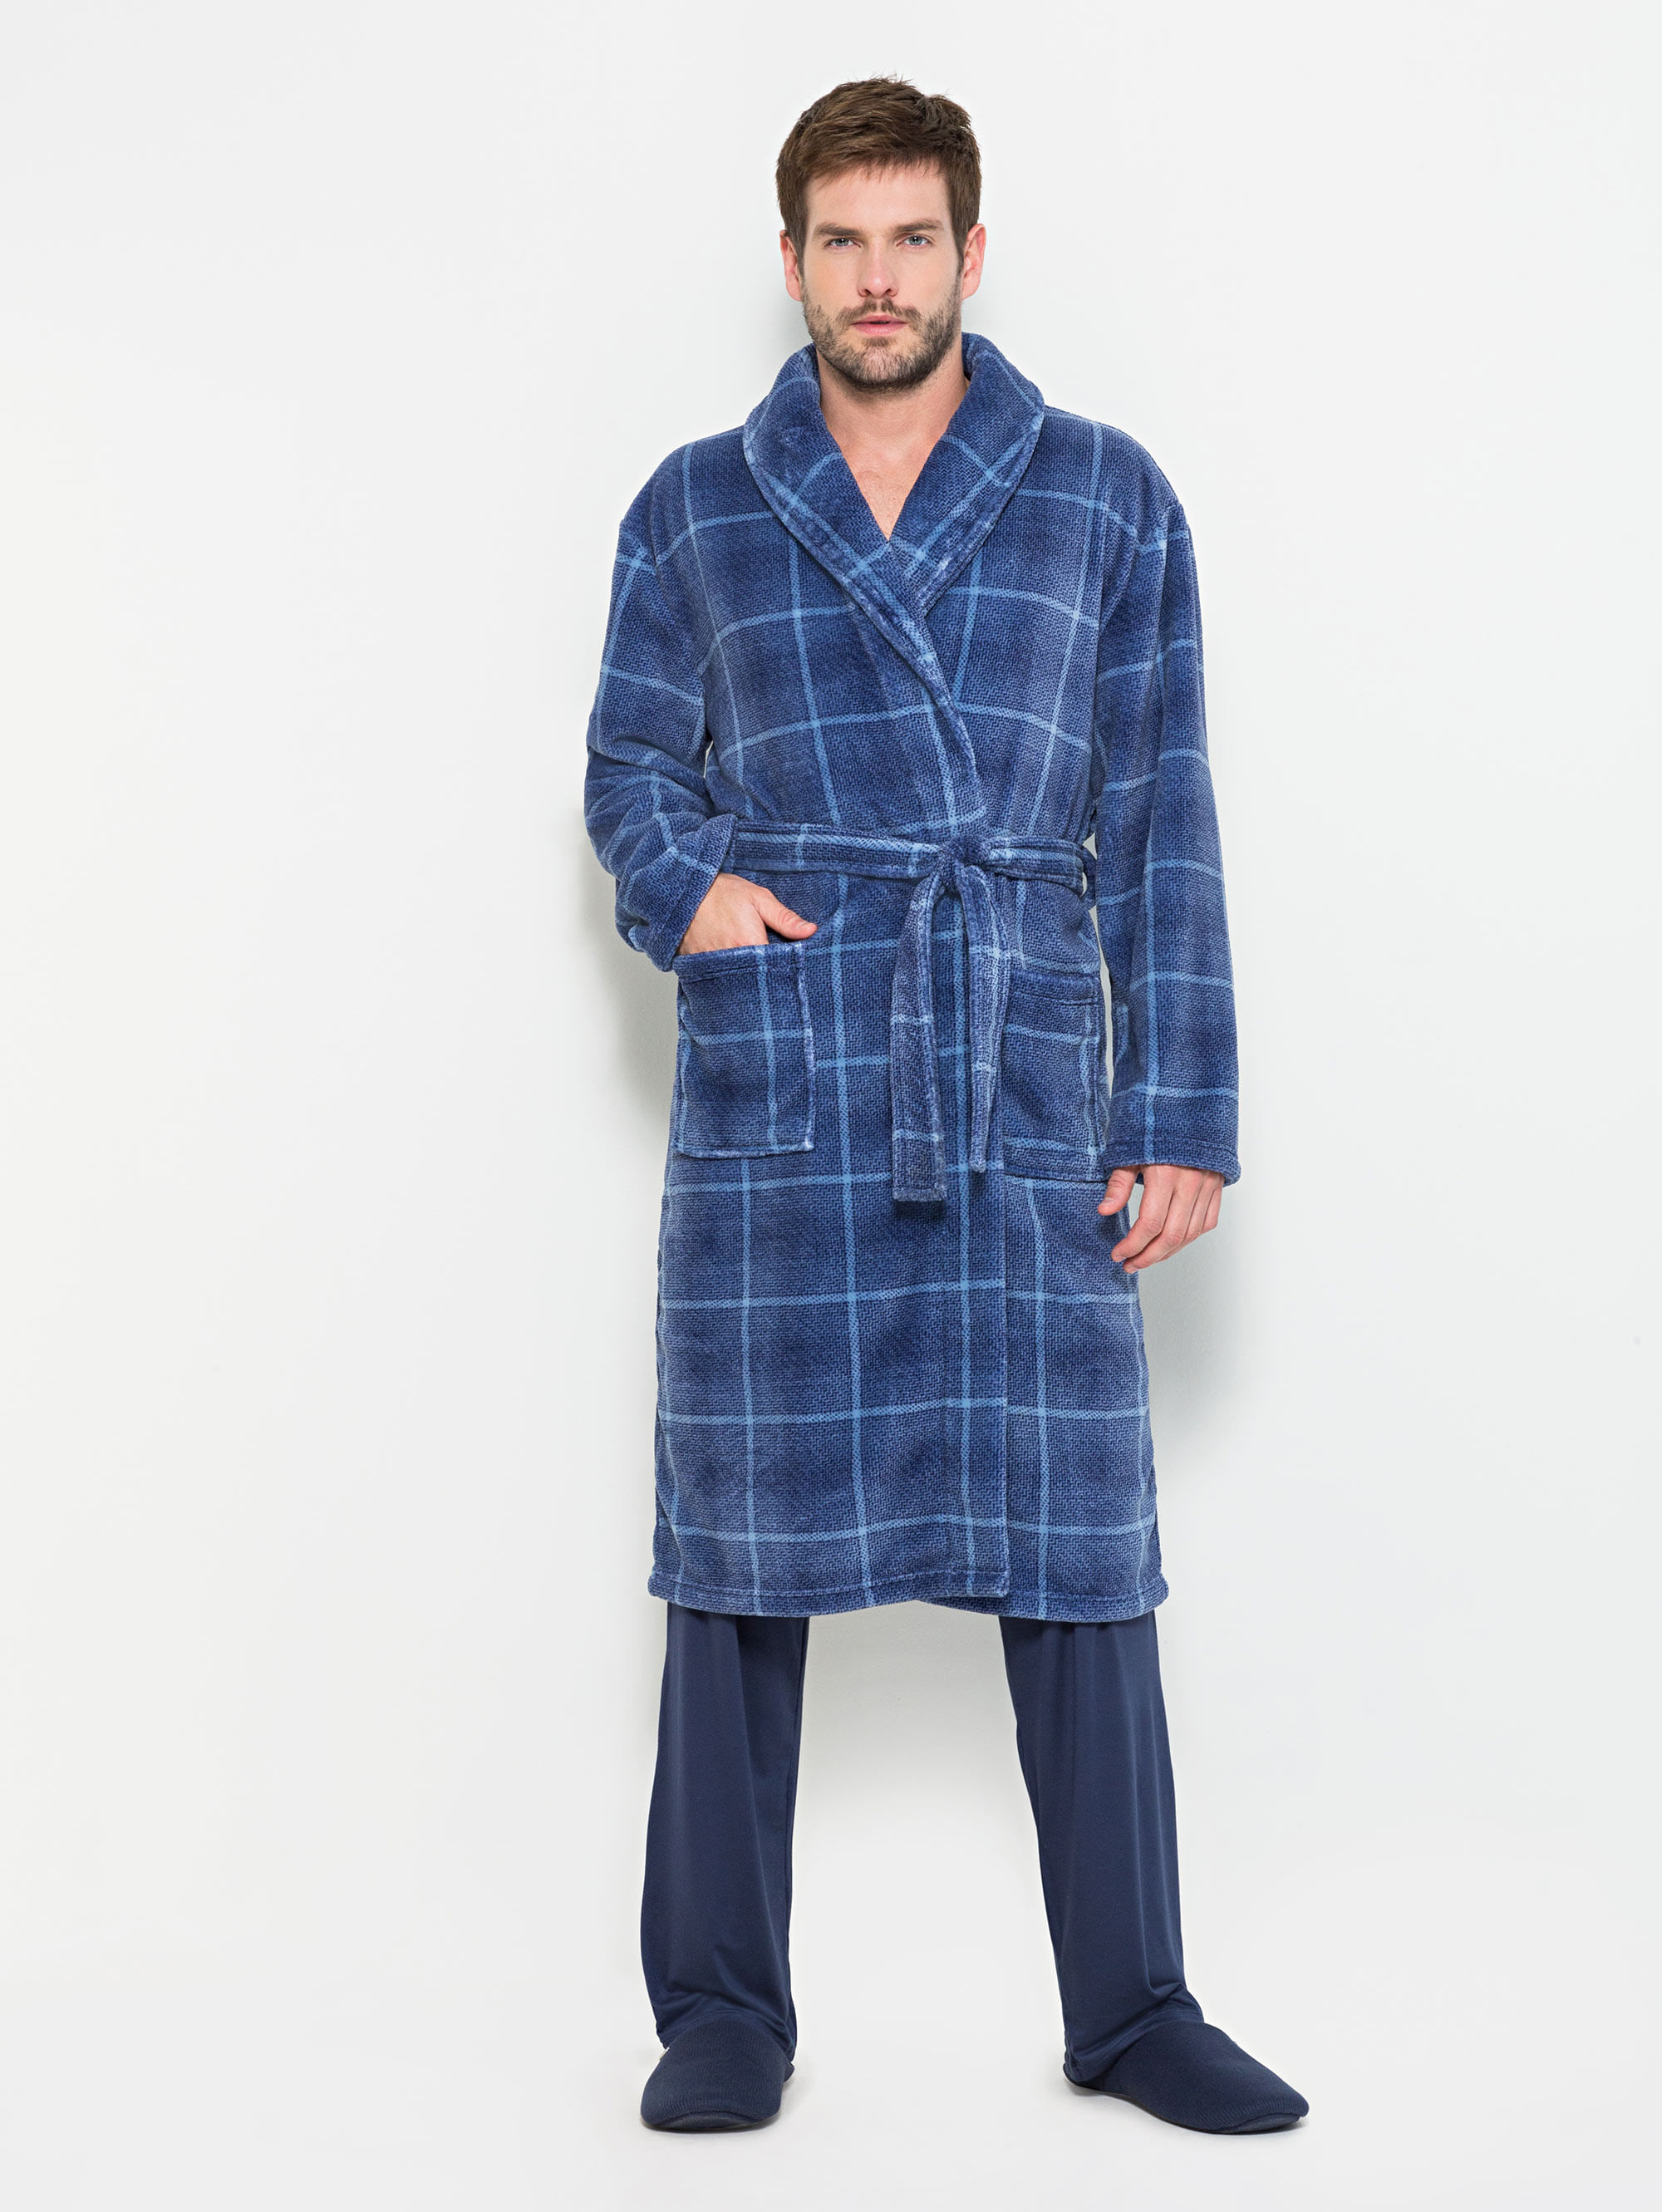 Robe-Manga-Longa-Soft-Masculino-London-05.03.0309